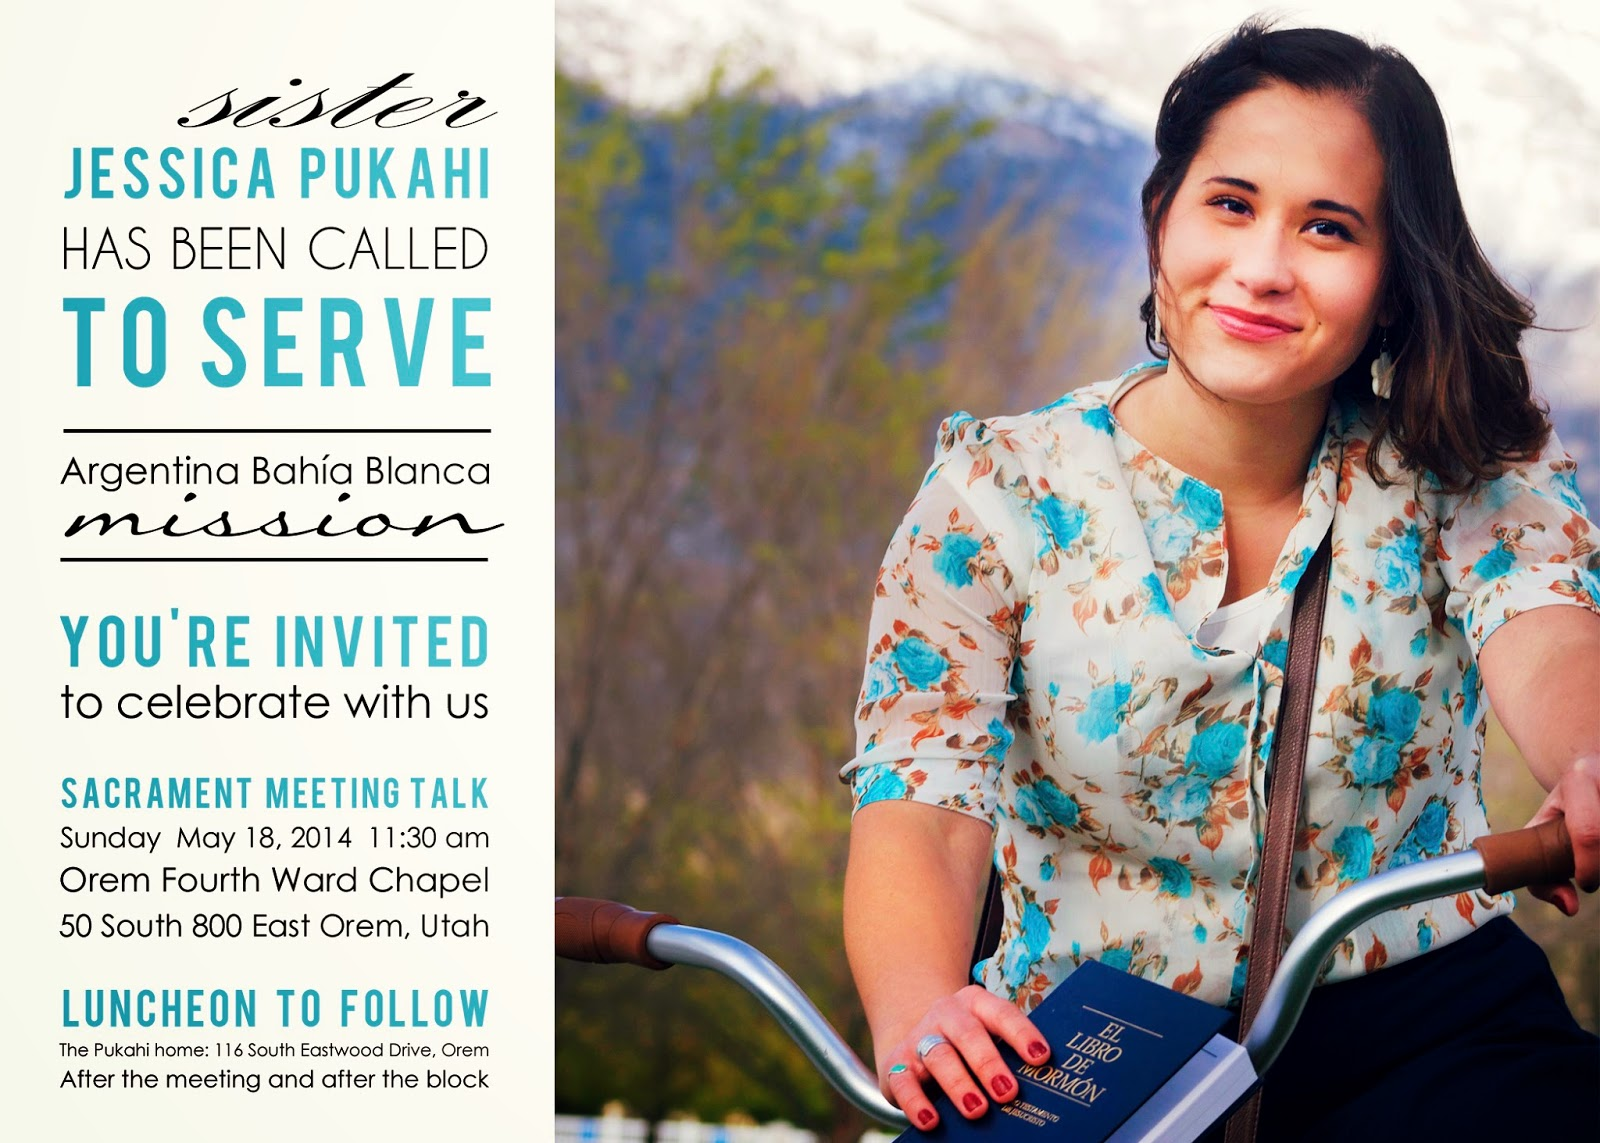 missionary farewell talk Find and save ideas about mission farewell on pinterest | see more ideas about farewell banner, farewell decorations and missionary farewell.